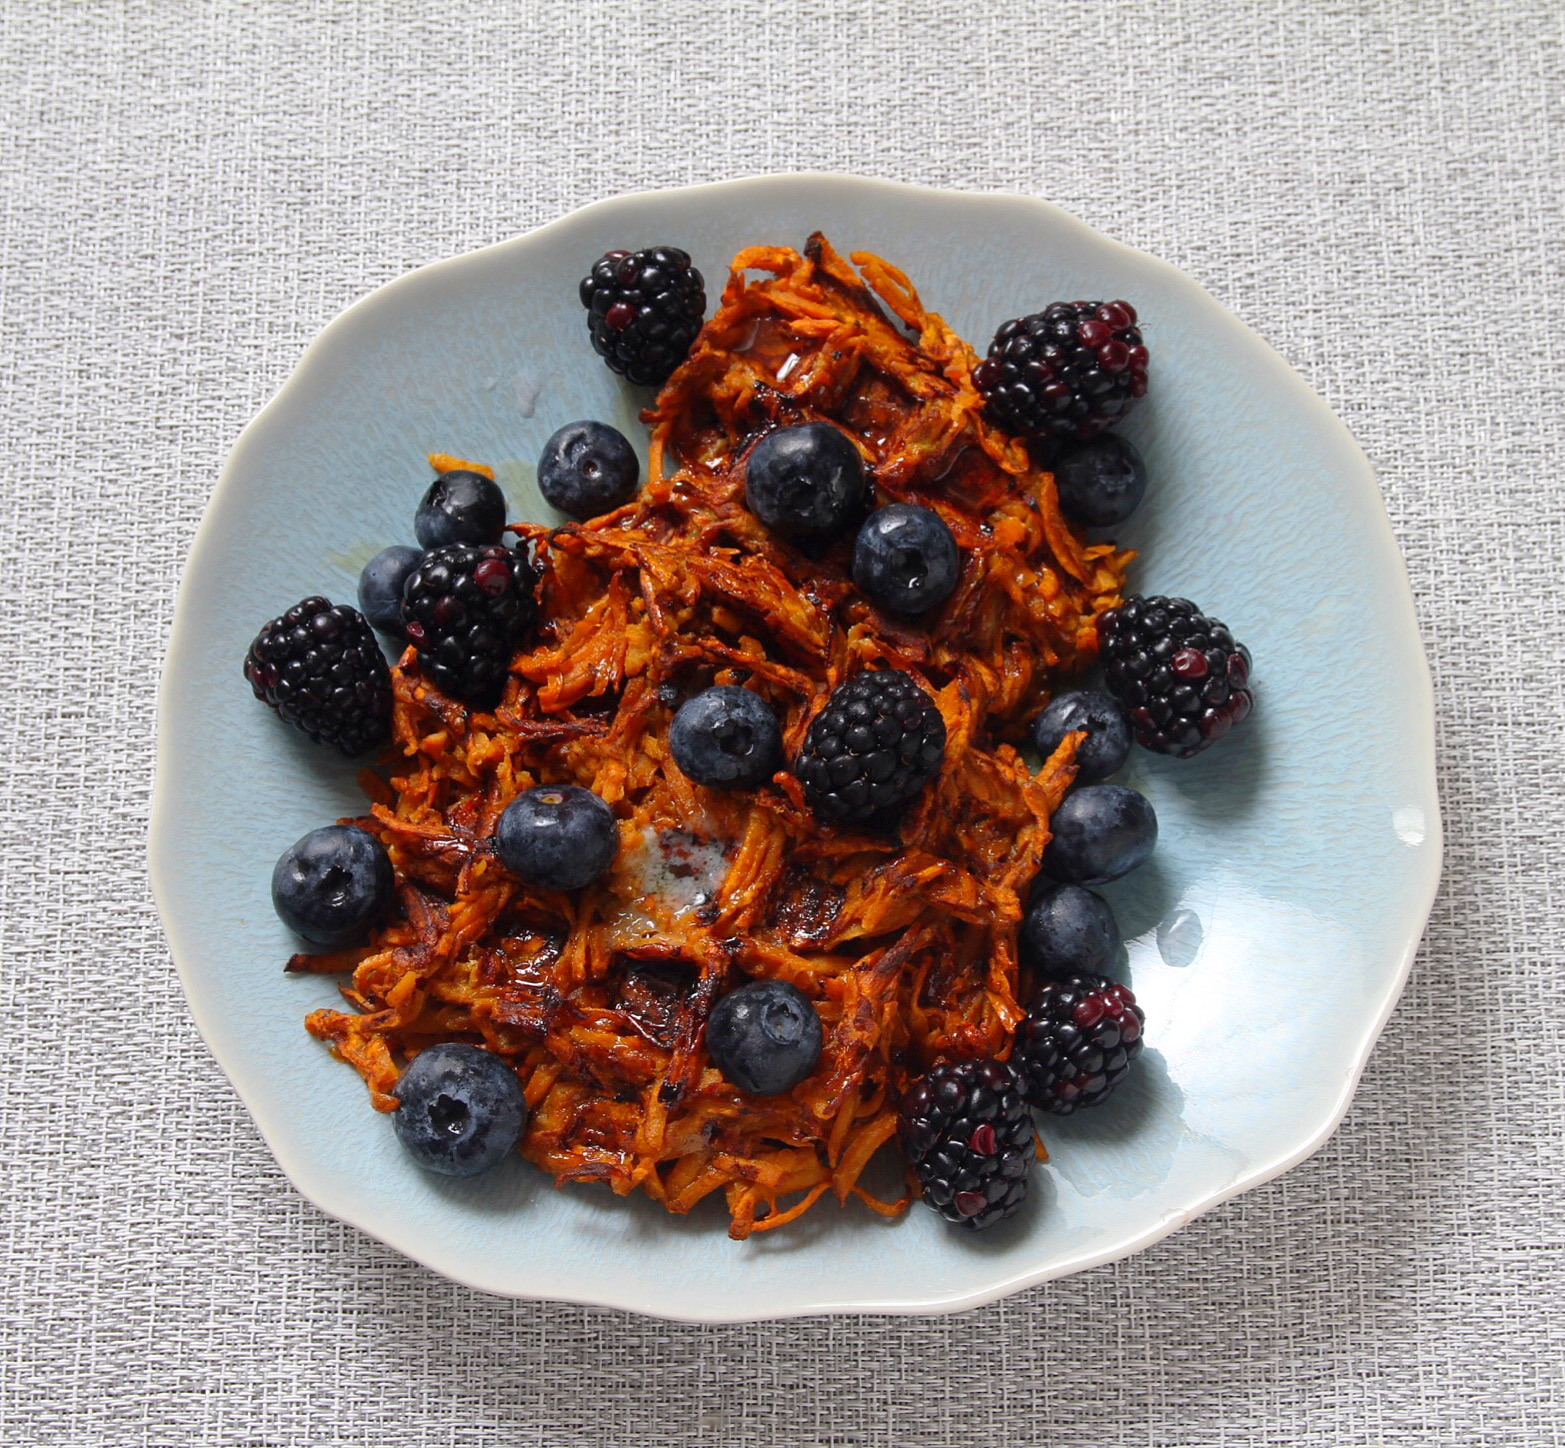 Sweet potato waffles with blueberries and blackberries. Syrup required!